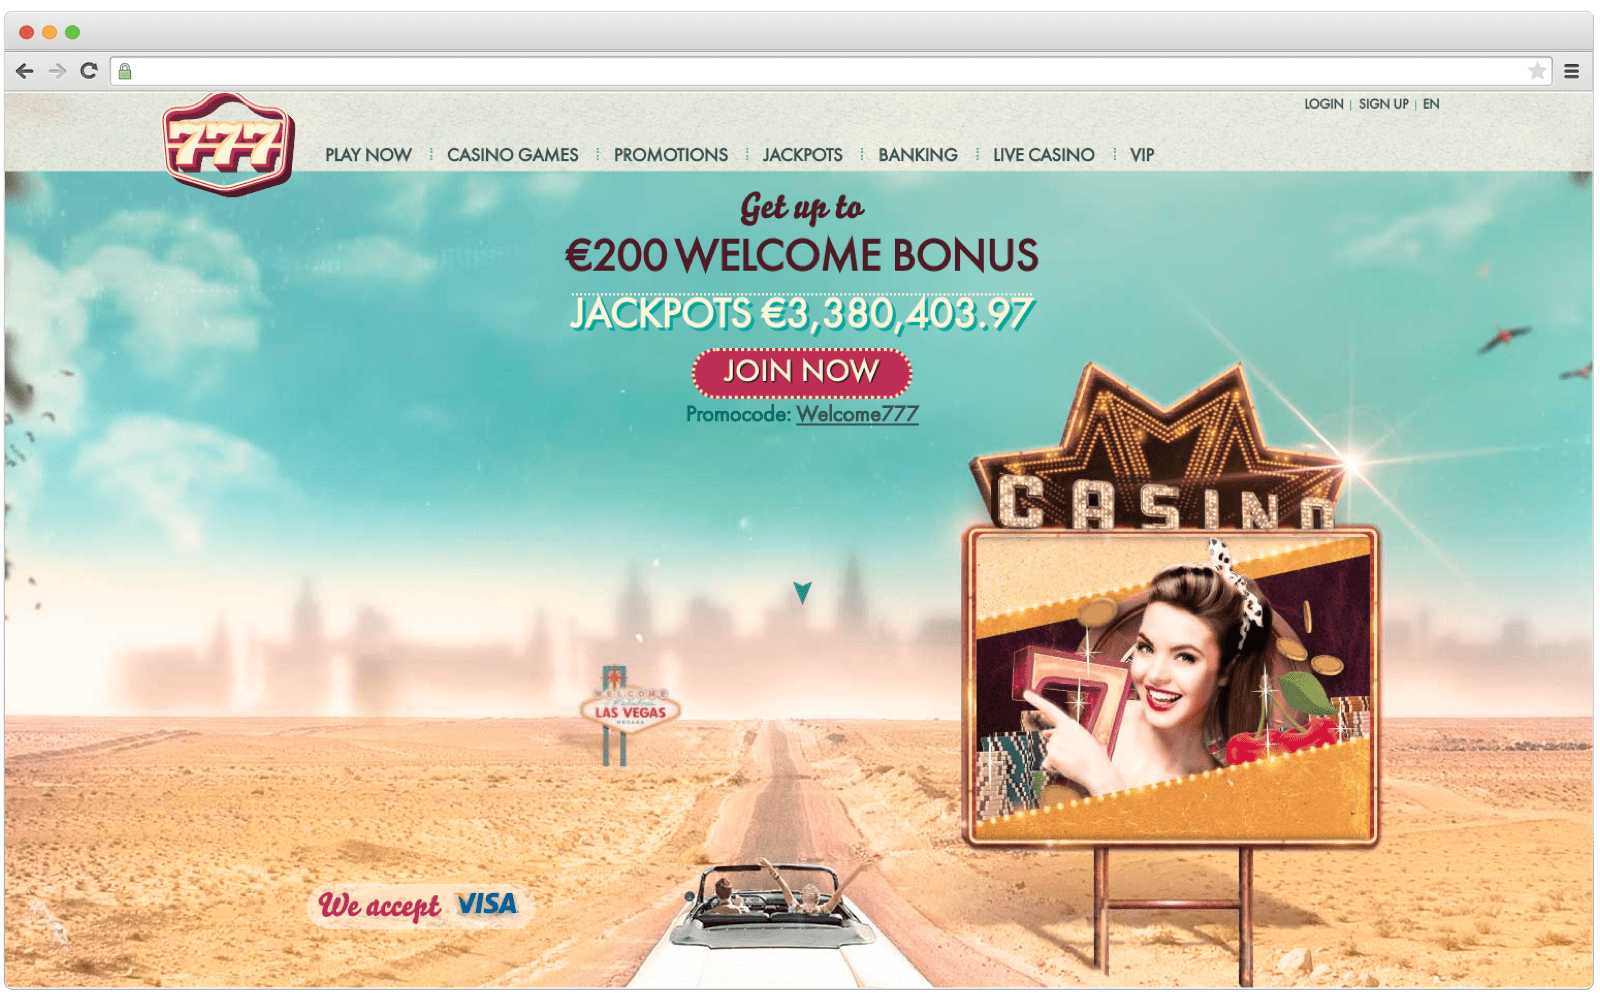 Example of casino website design